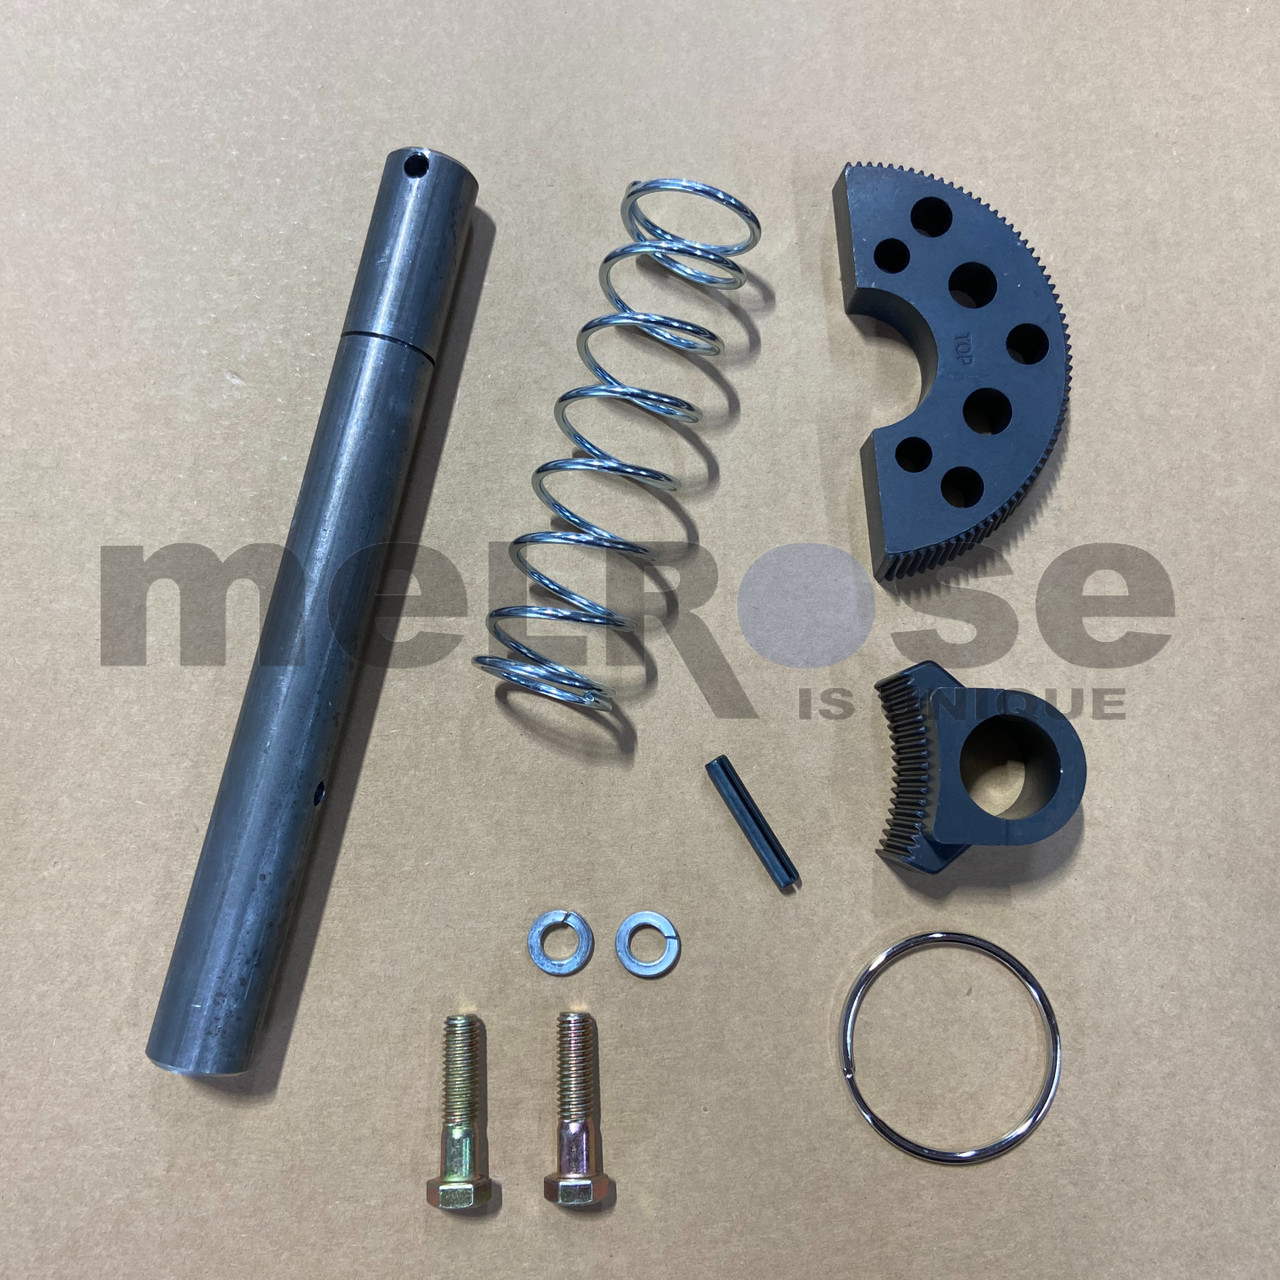 Rotary N2148 Replacement Arm Restraint Kit